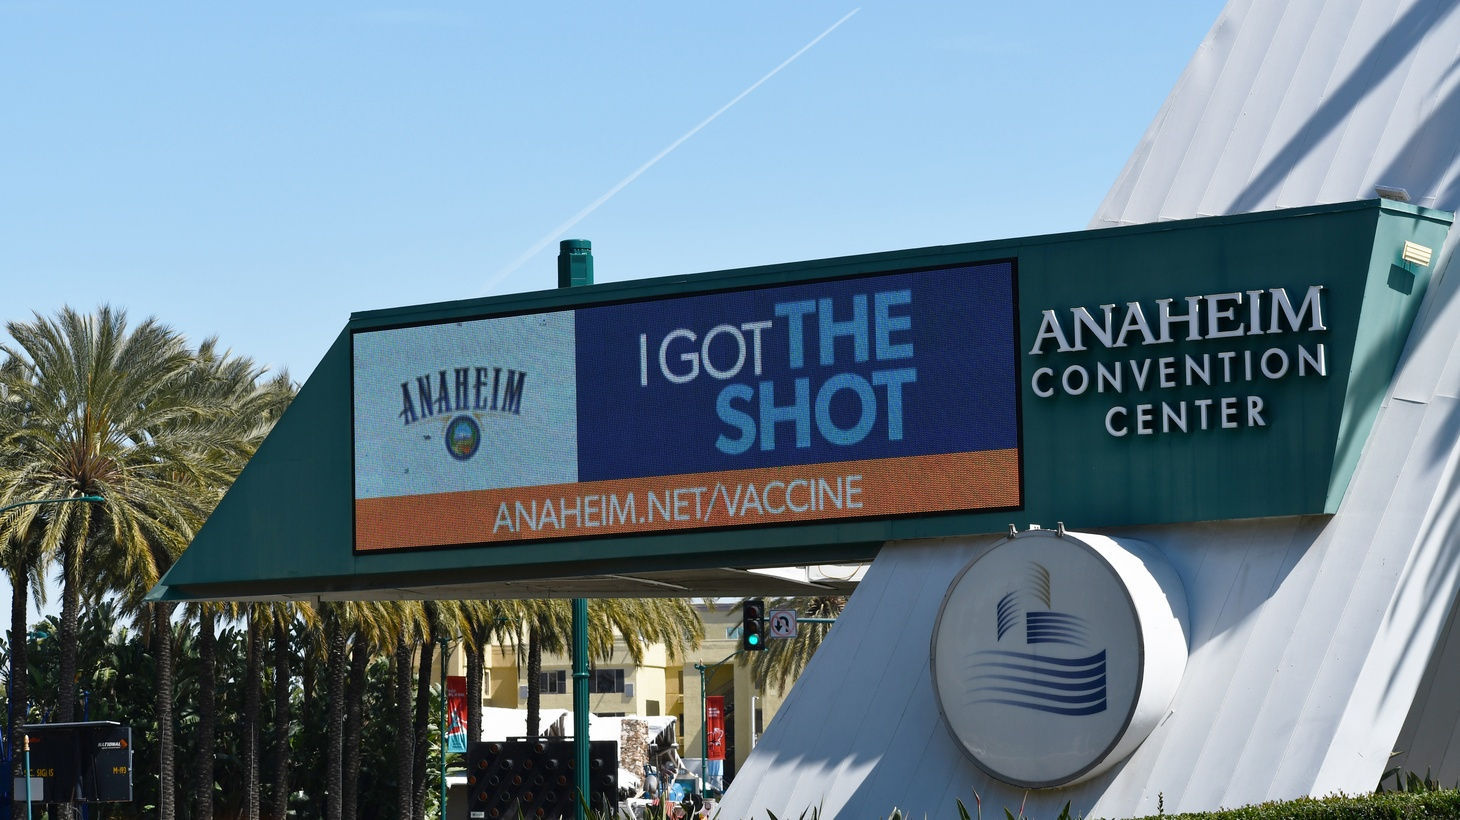 """The Anaheim Convention Center serves as a mass coronavirus vaccination site in Orange County, California. The marquee says """"I got the shot."""" March 19, 2021."""